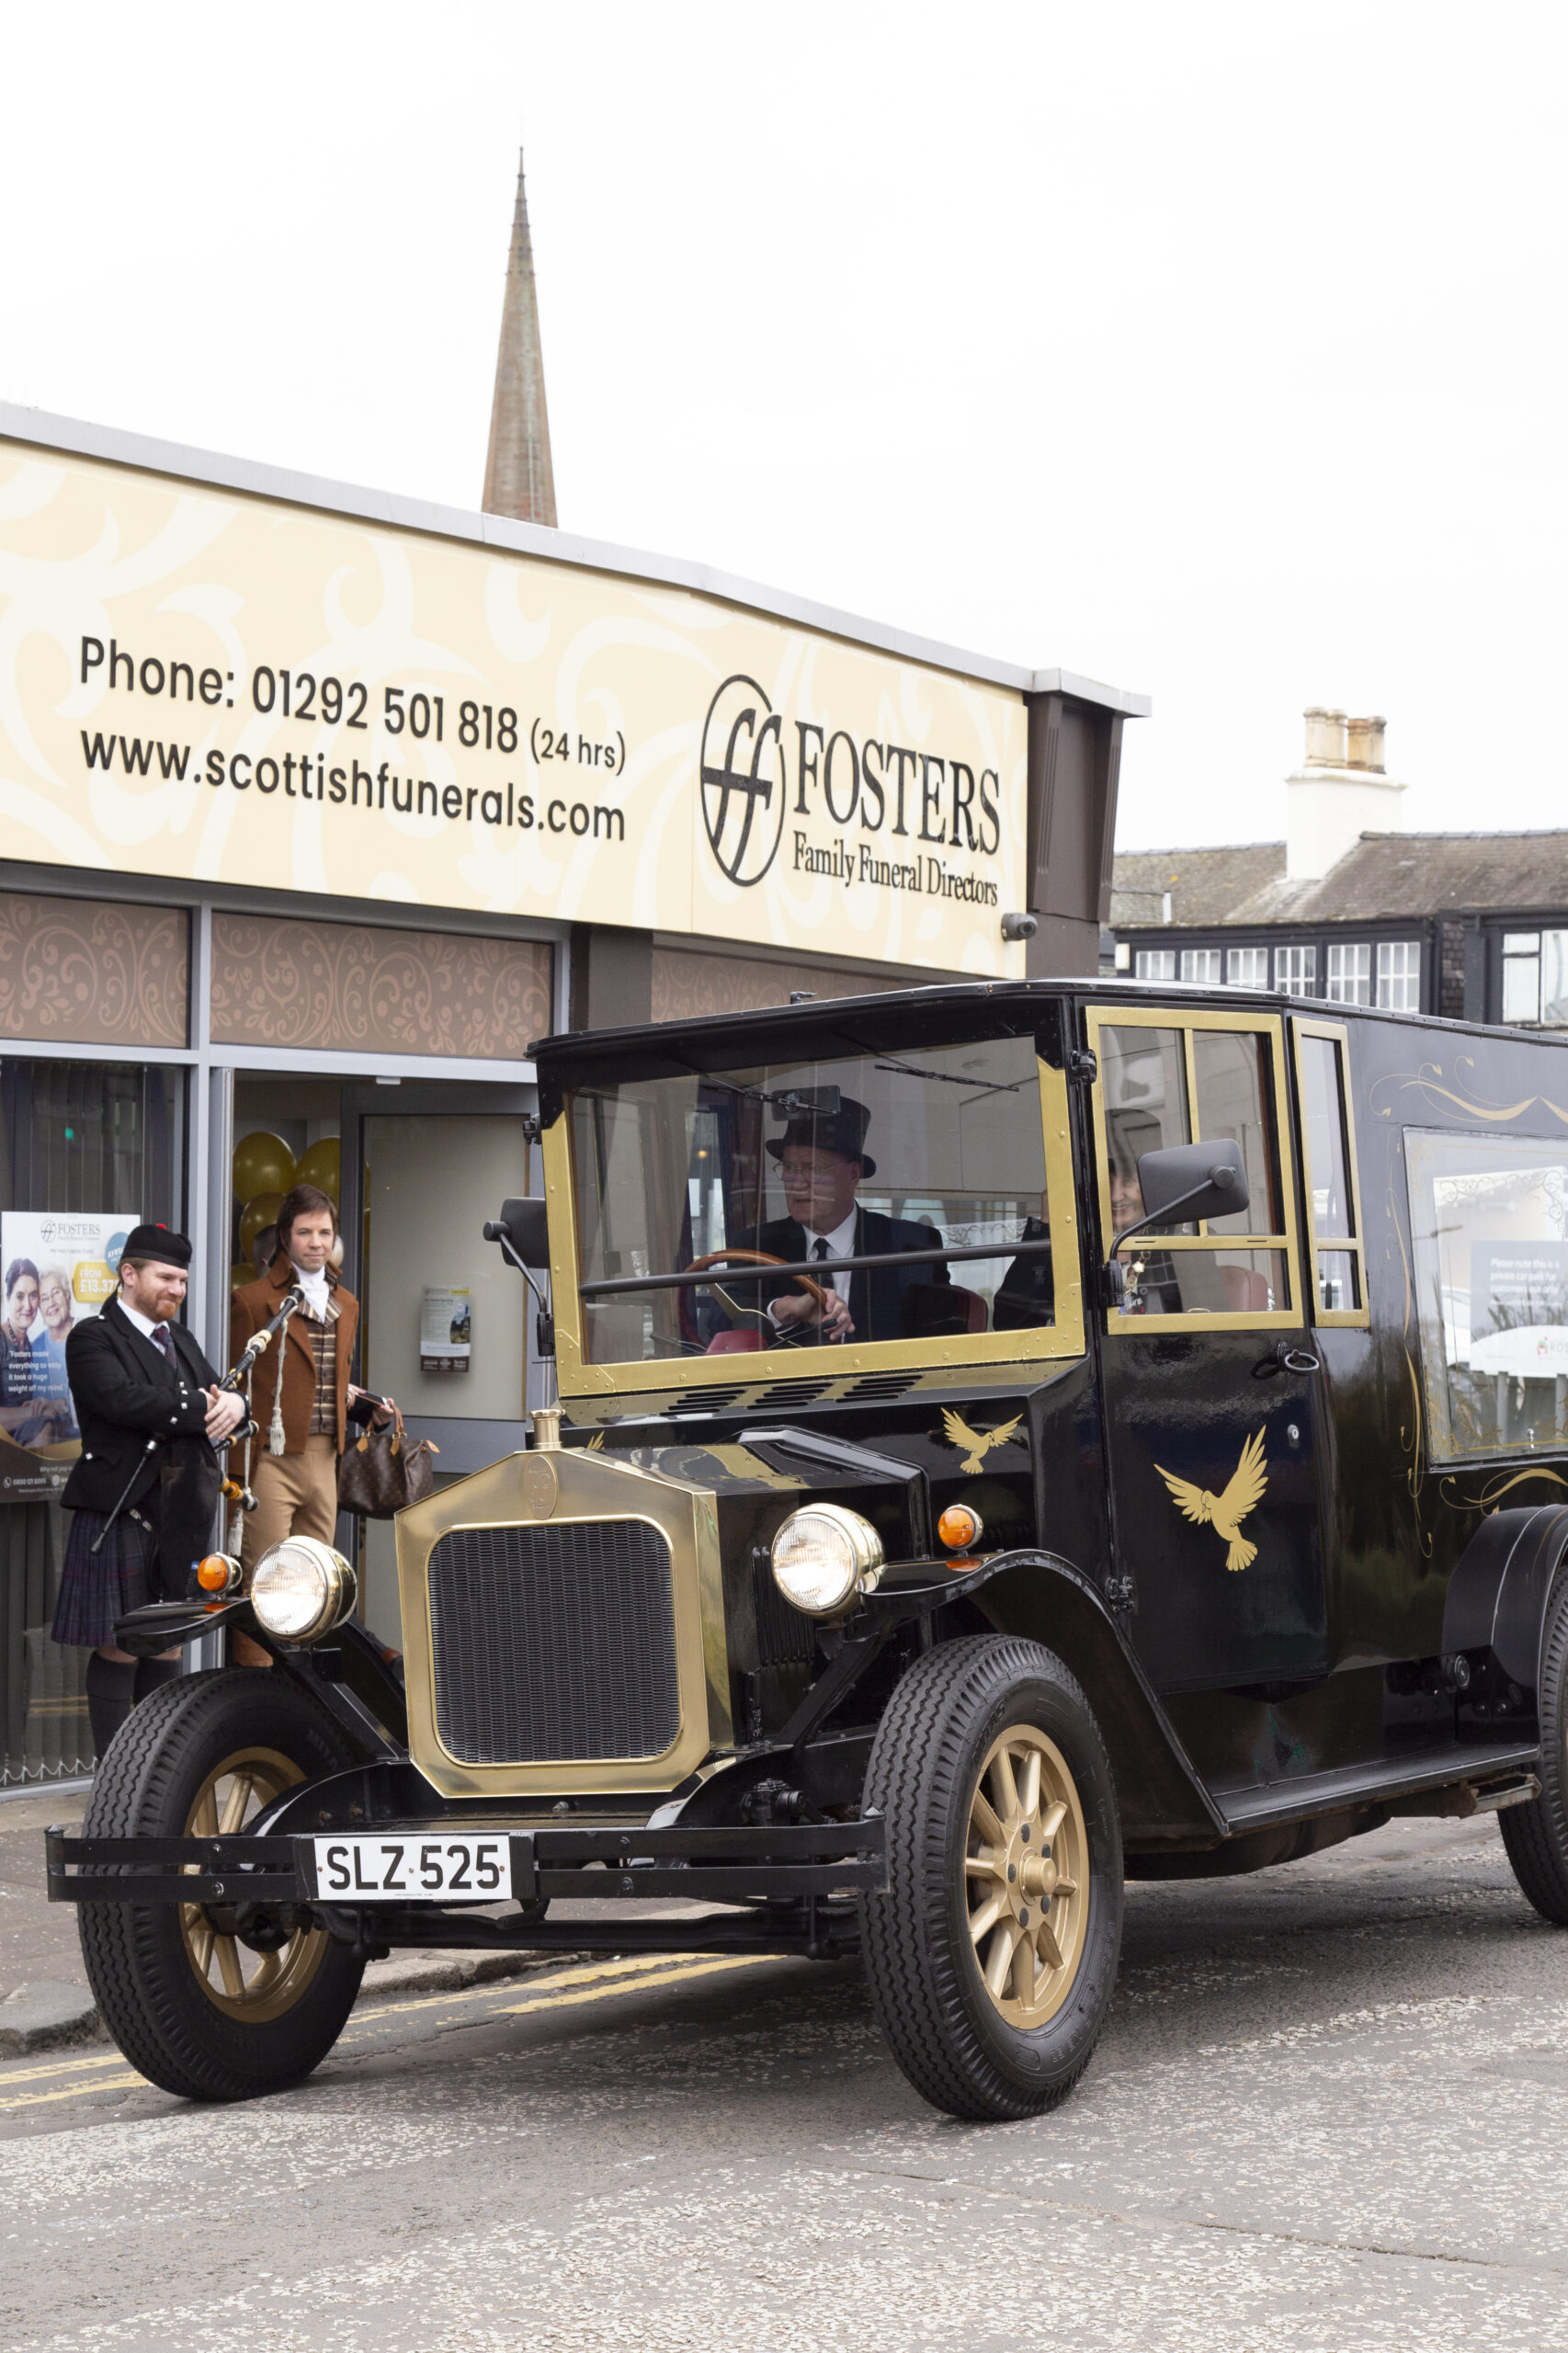 Classic Hearse outside Fosters funeral directors Burns statue square, Ayr